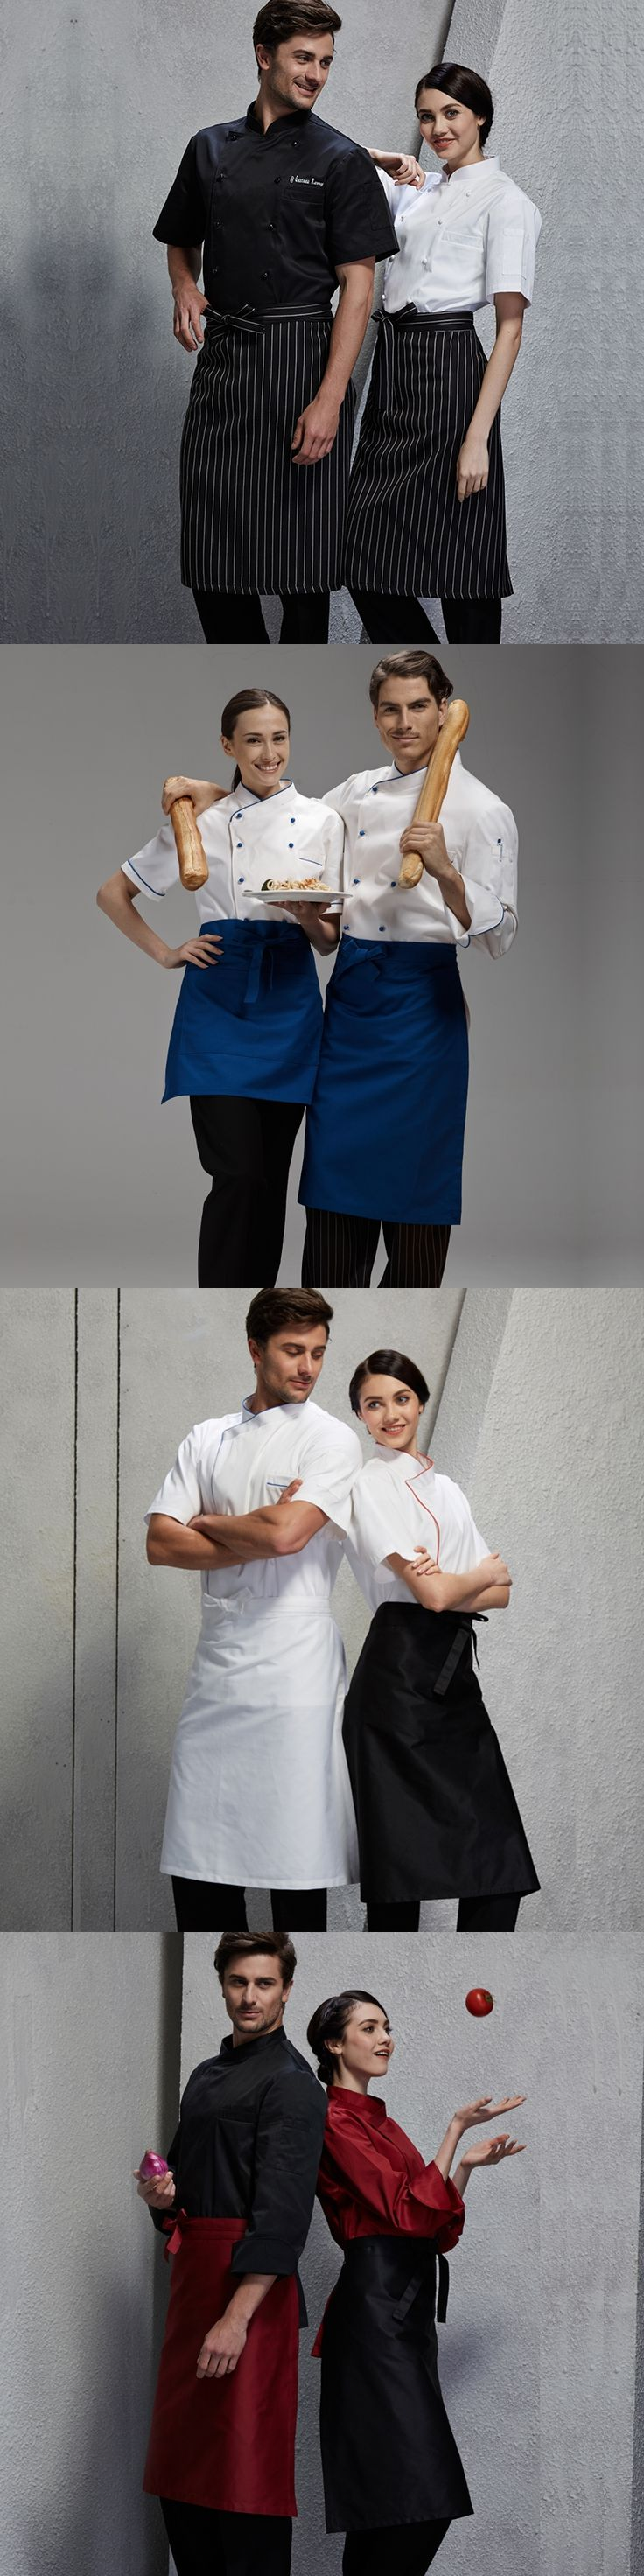 Chef Aprons Men & Women Restaurant Restaurant Hotels in the Wai Wai Kitchen Half Skirts Catering Work Aprons apron